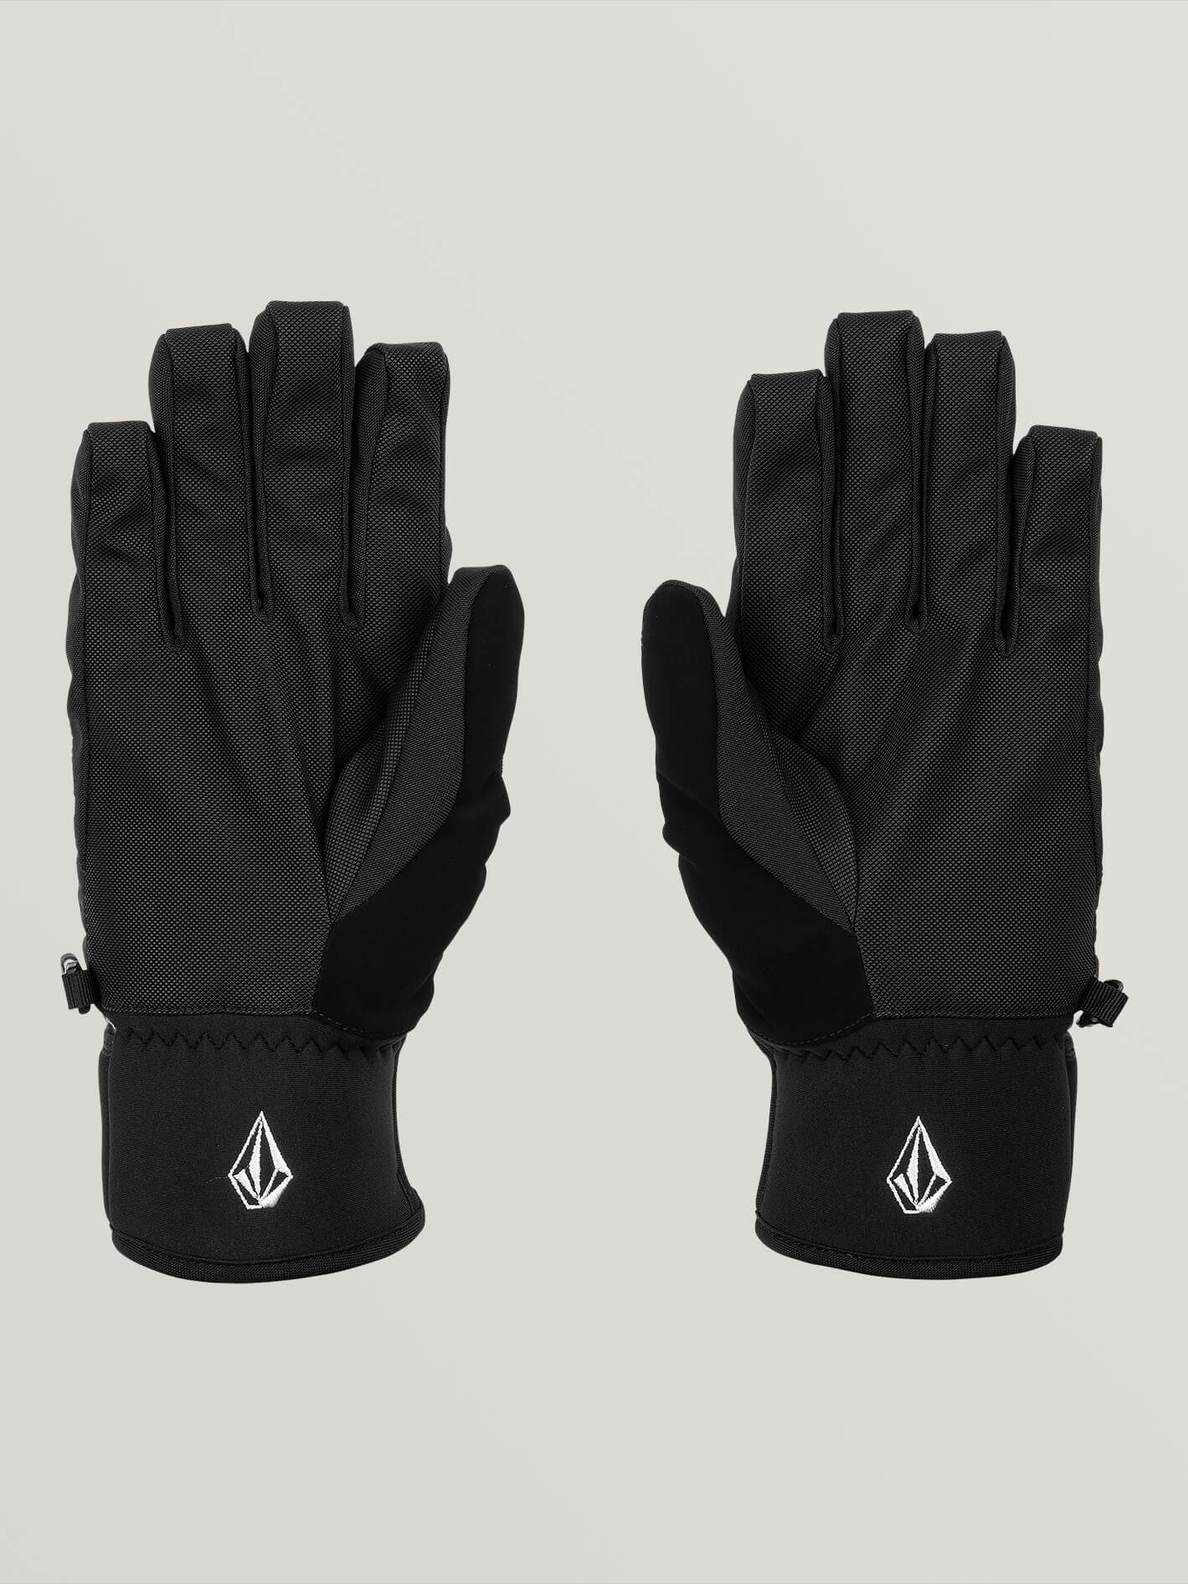 Volcom Nyle Snow Glove - 88 Gear